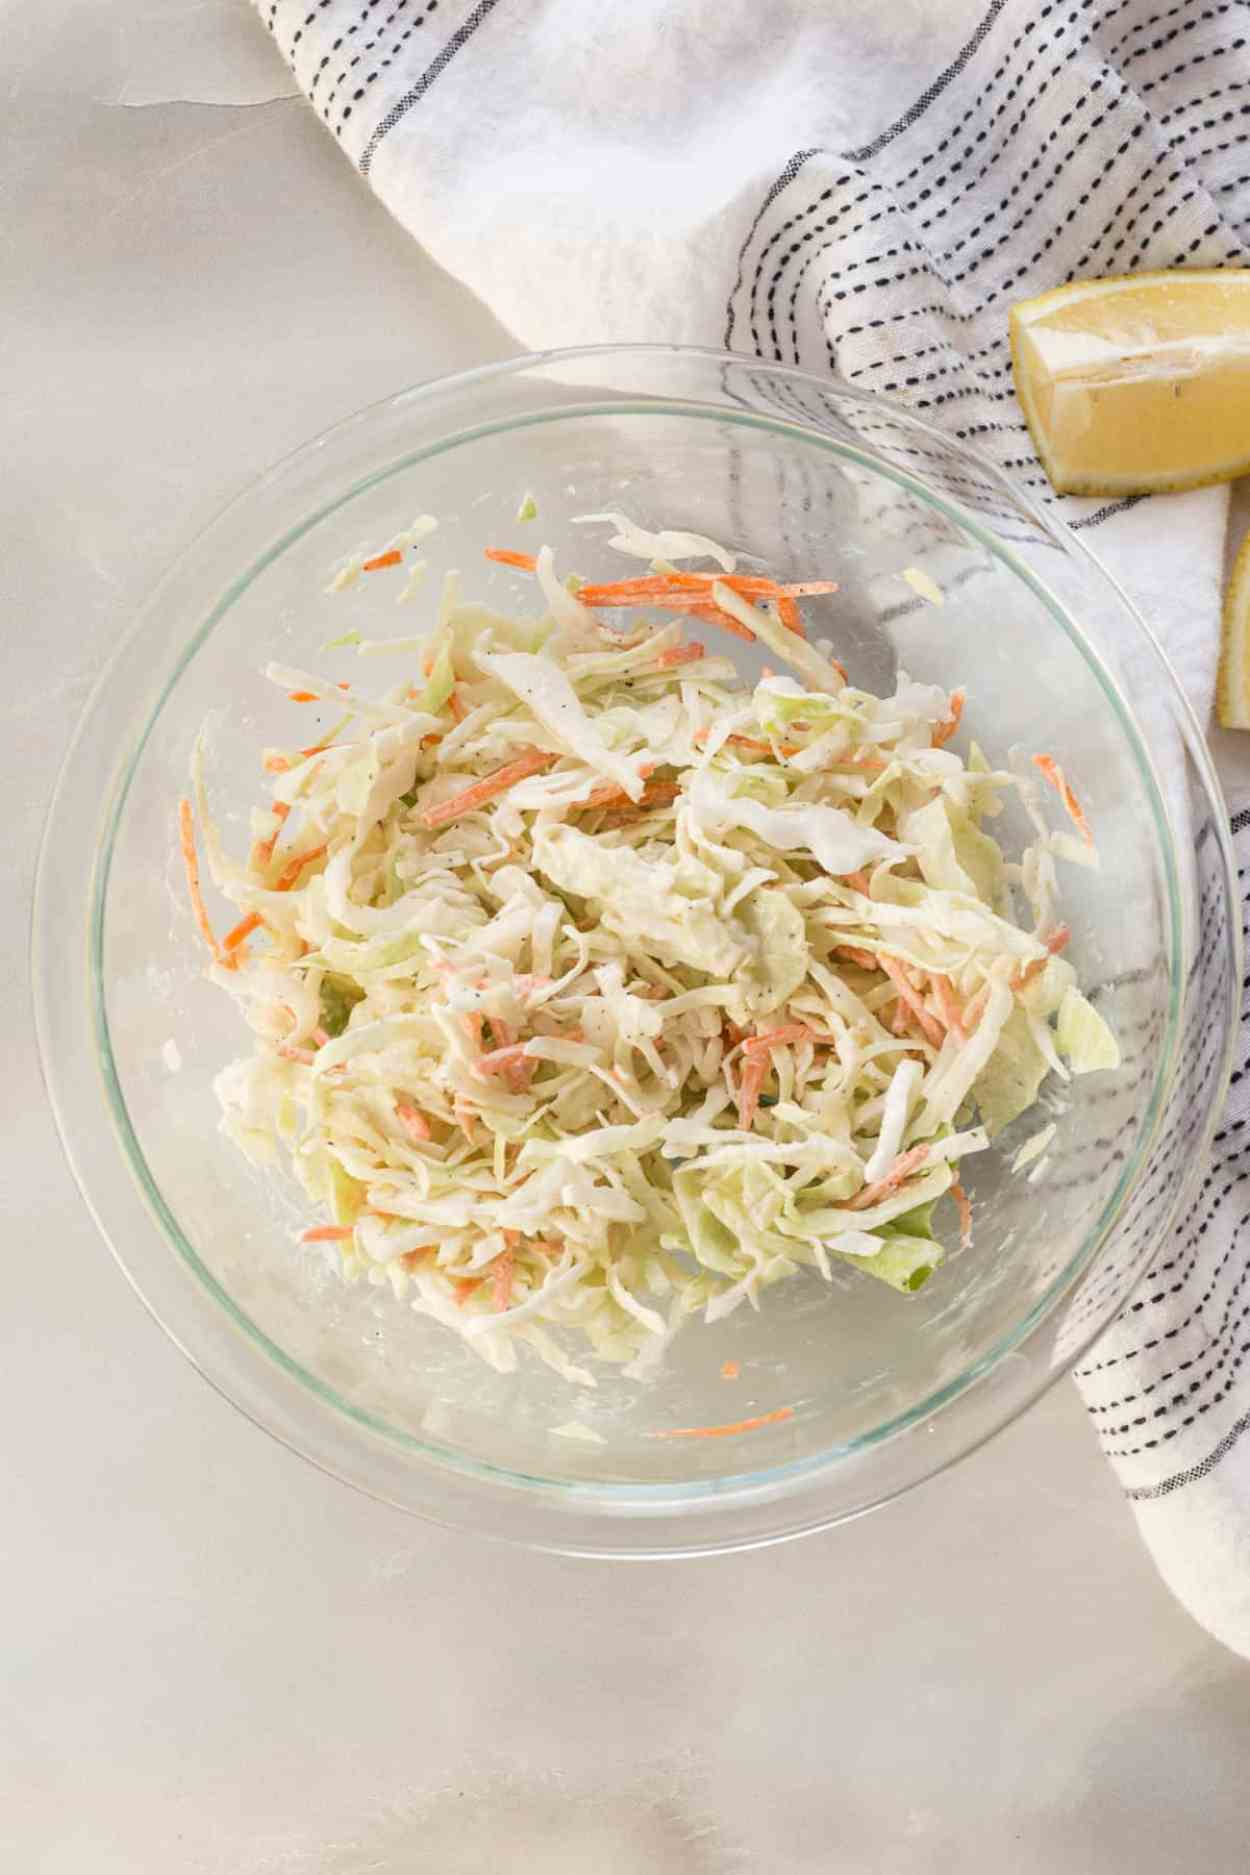 How to make coleslaw. Simple and great addition for BBQ pulled chicken sandwiches.